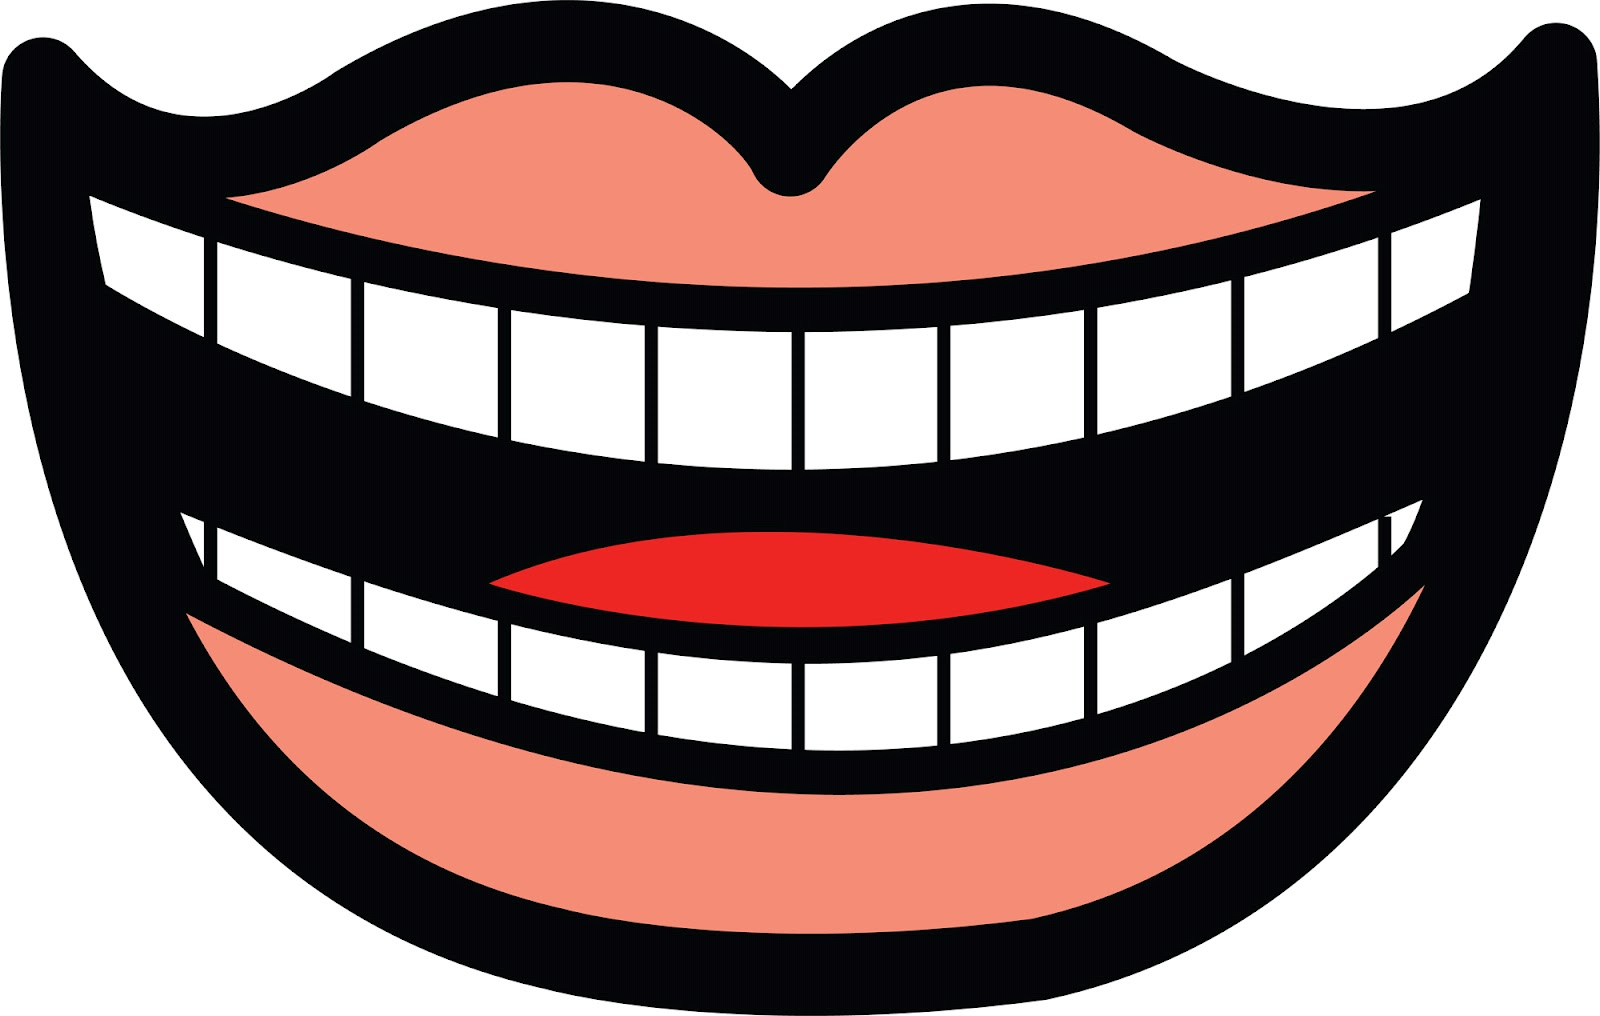 mouth template for preschool - quiet mouth clip art clipart panda free clipart images